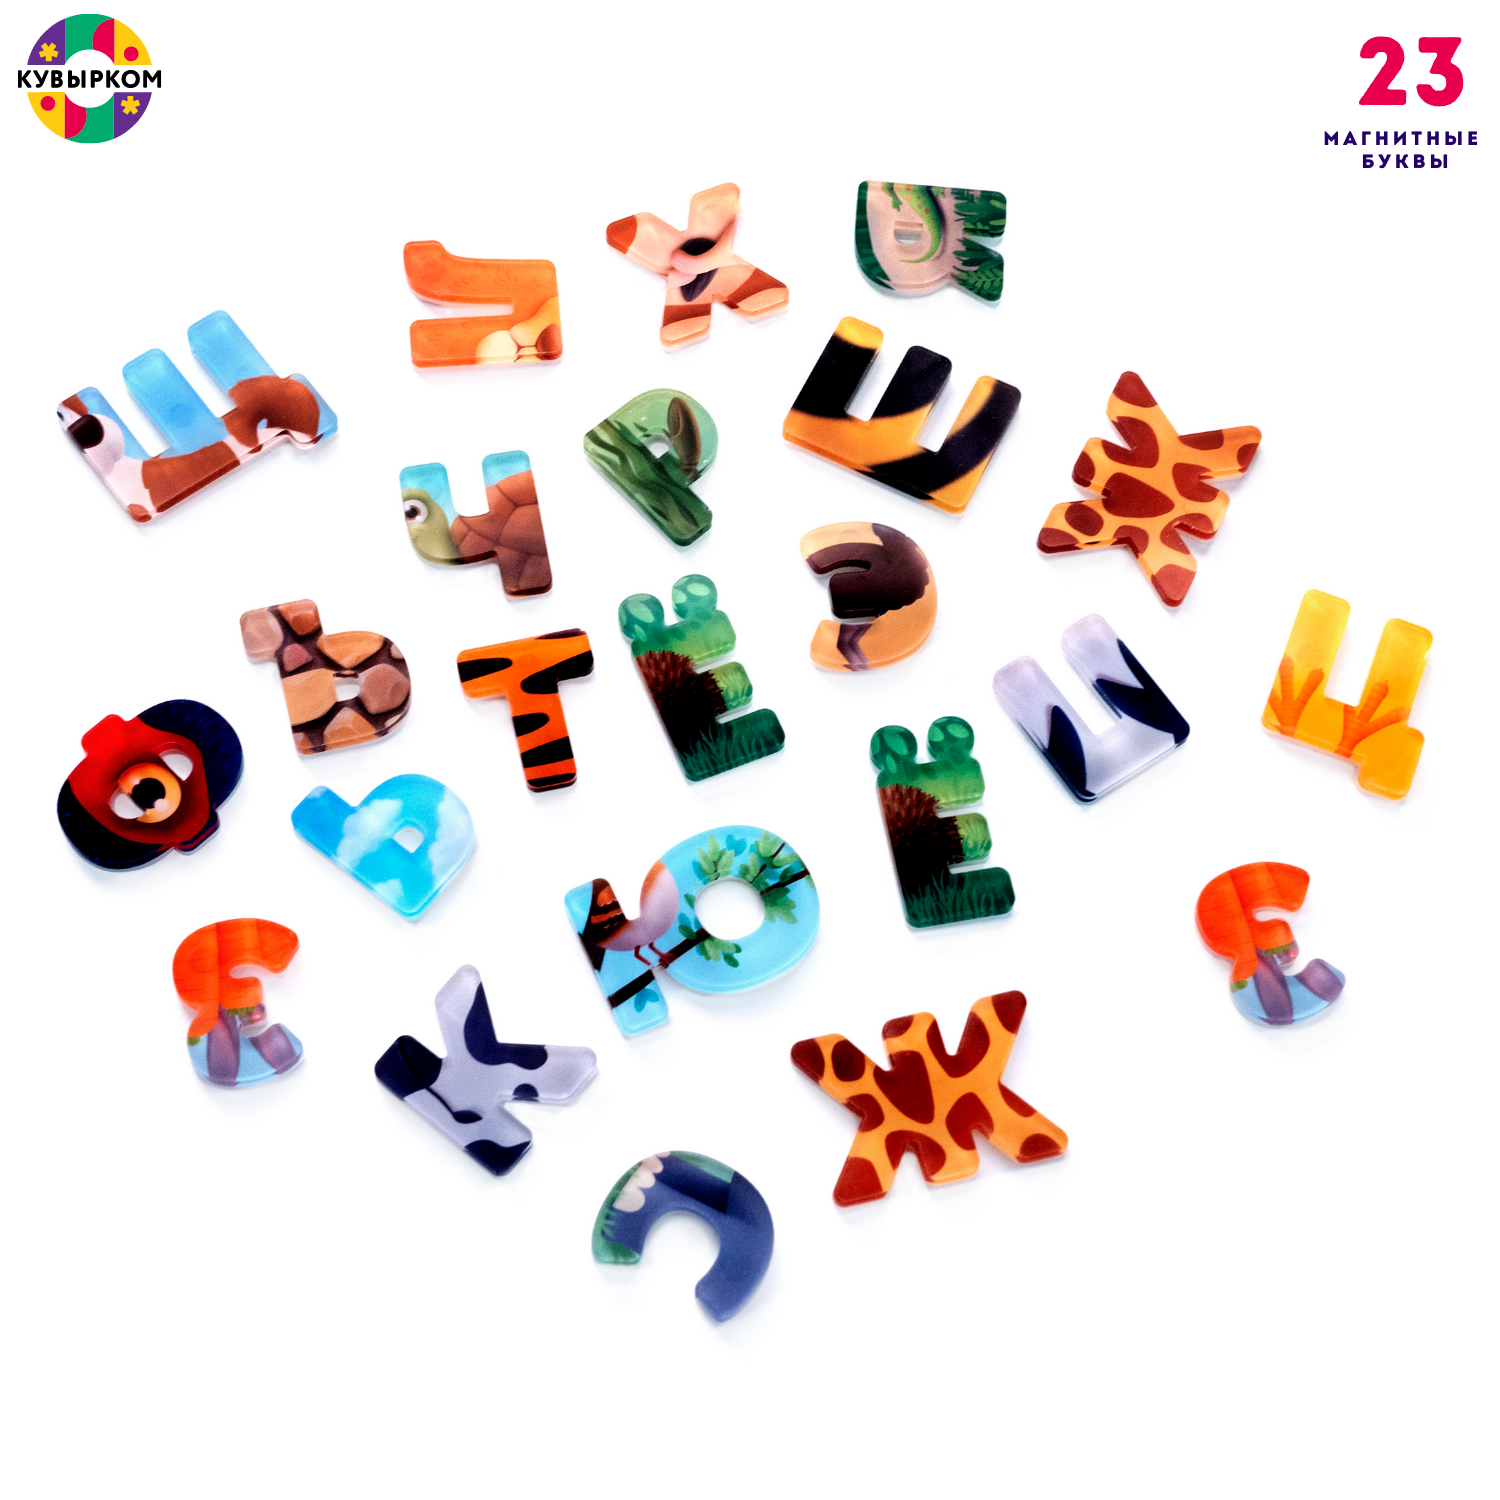 Somersaults / Set of SPARE, 23 magnetic letters of the Russian alphabet with associations, do not break, can be washed